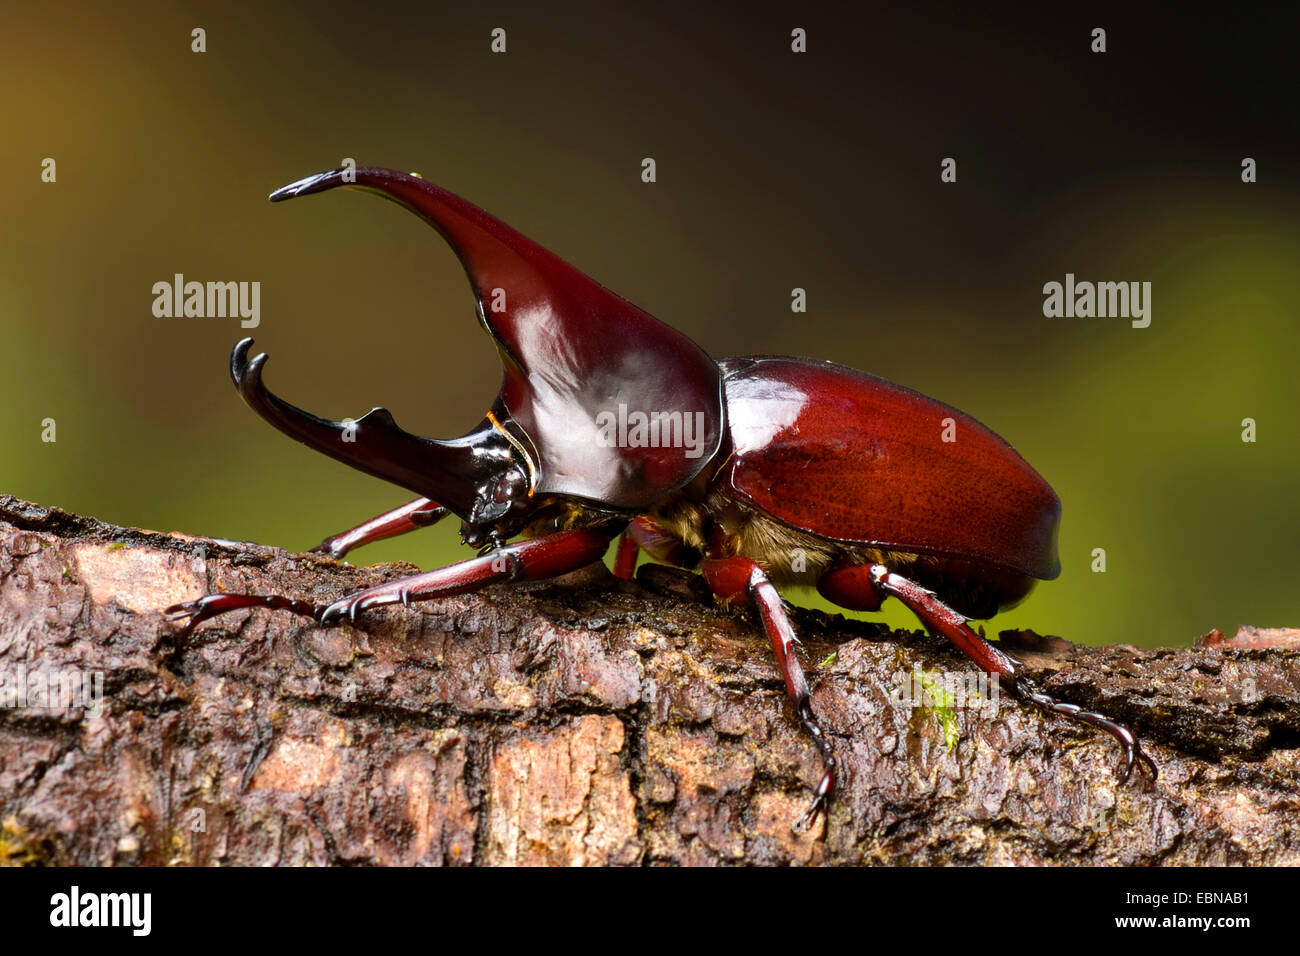 Siamese rhinoceros beetle, Fighting beetle (Xylotrupes gideon), male, close-up view - Stock Image